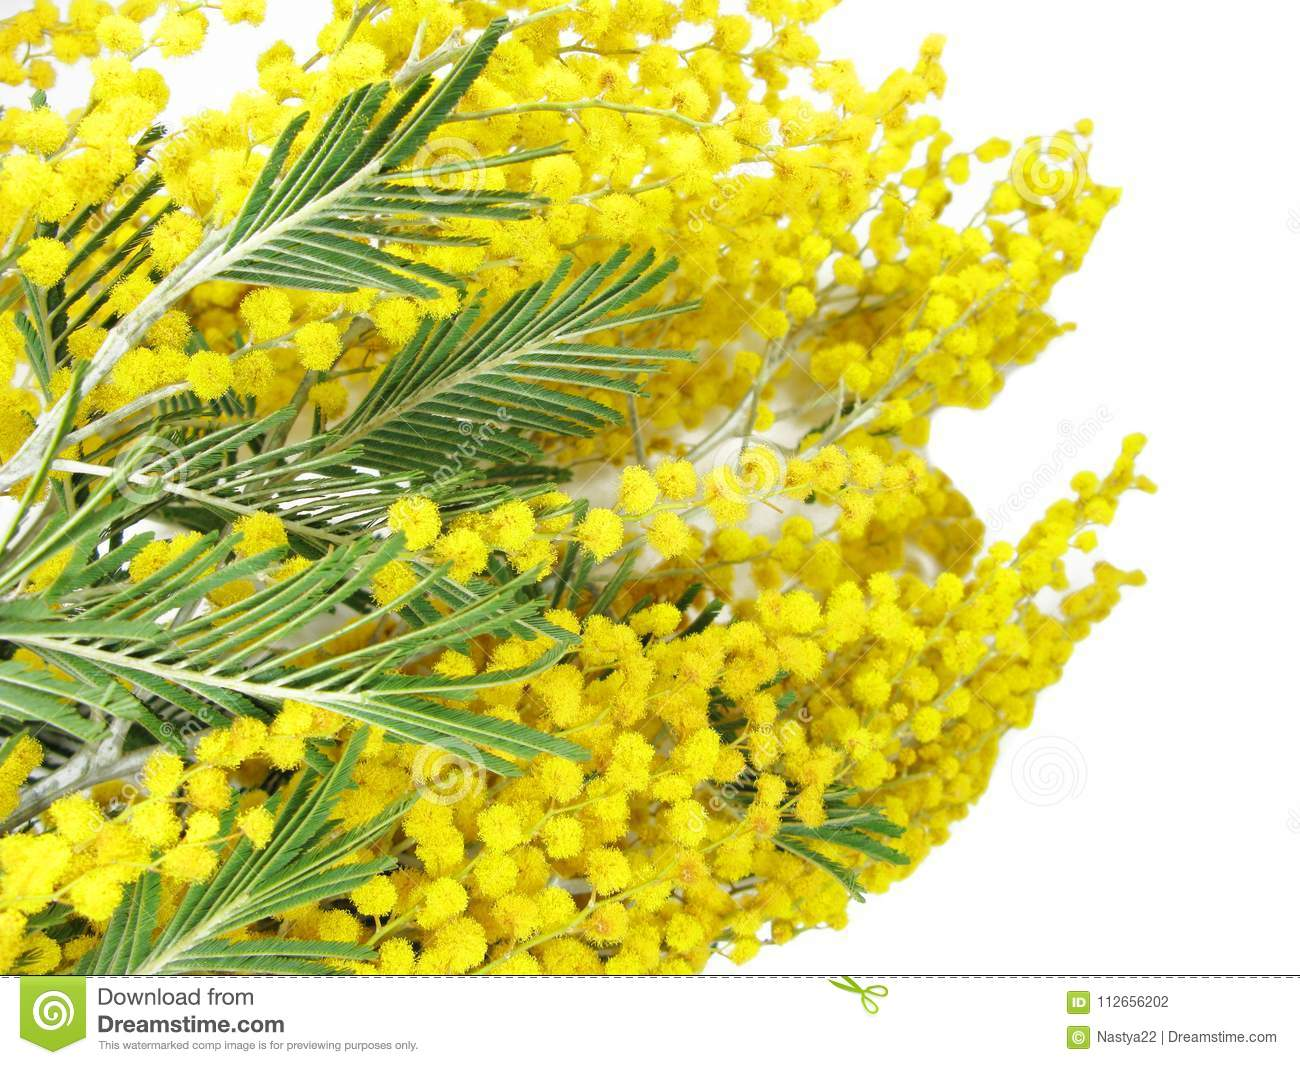 Mimosa yellow bush spring floral background 8 march card stock photo mimosa yellow bush spring floral background 8 march card mightylinksfo